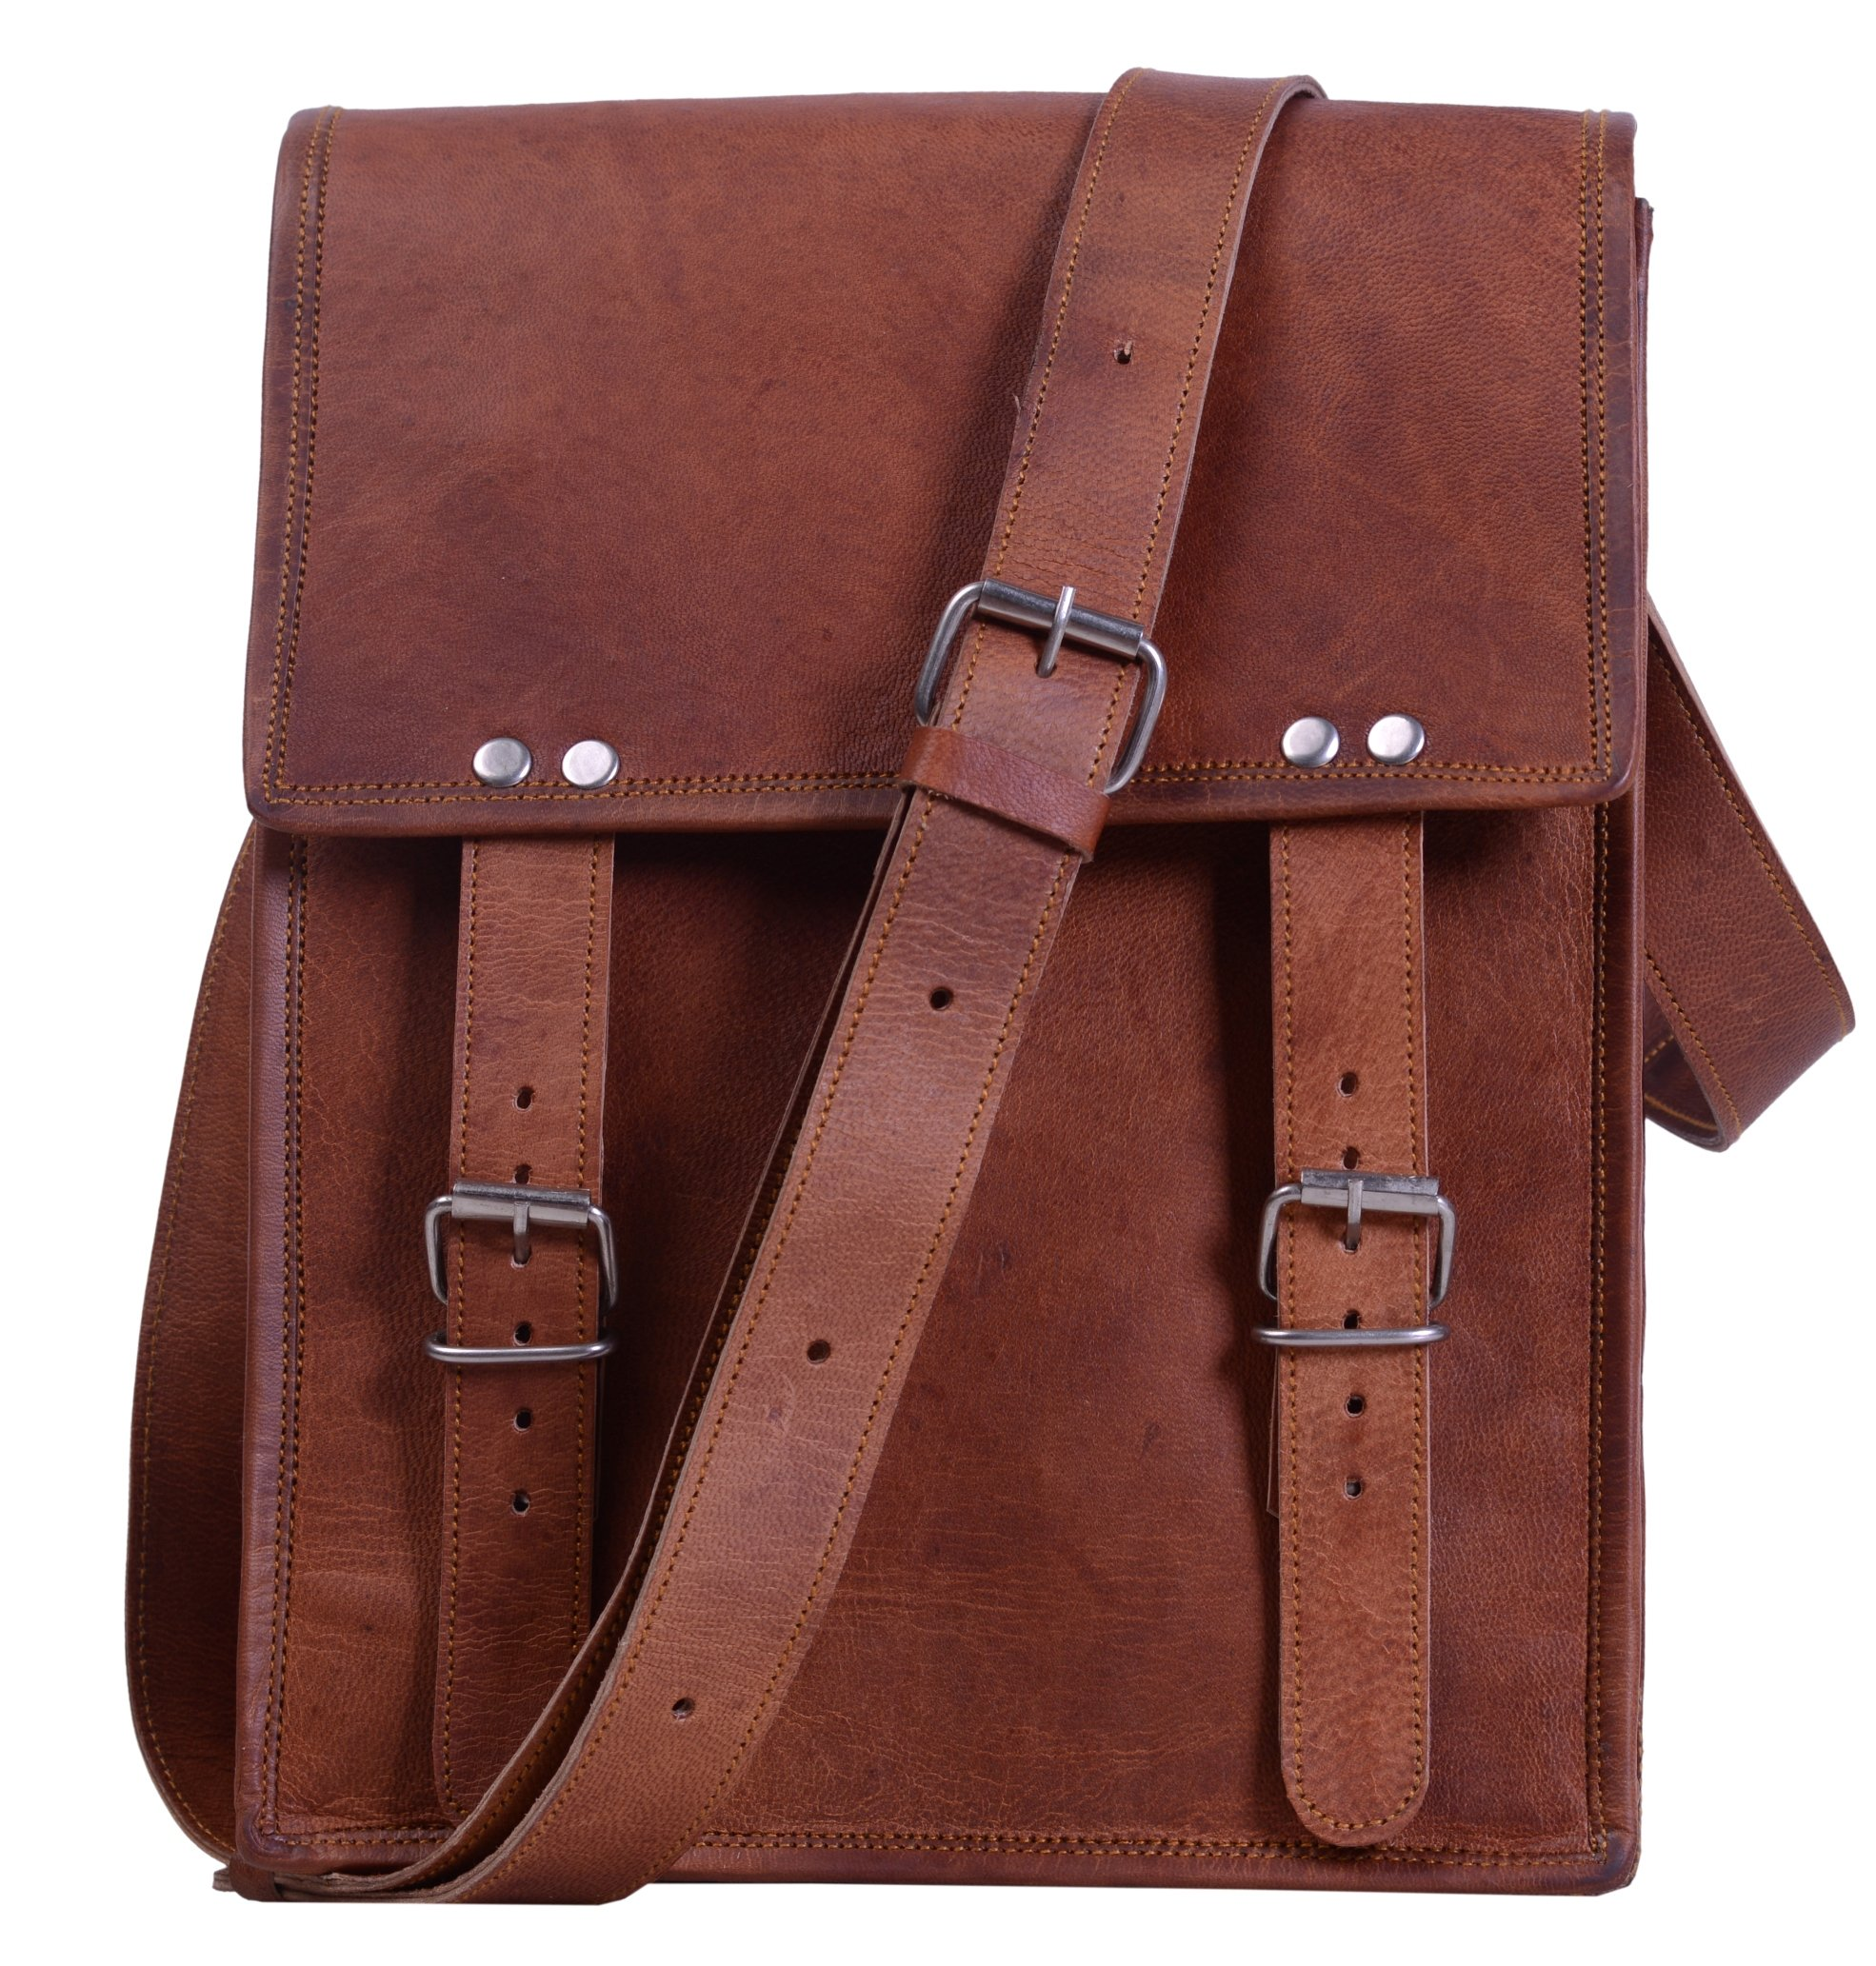 0f9c81689514 Komal s Passion leather 11 Inch Handmade Standing Ipad Leather Messenger  Satchel Bag product image